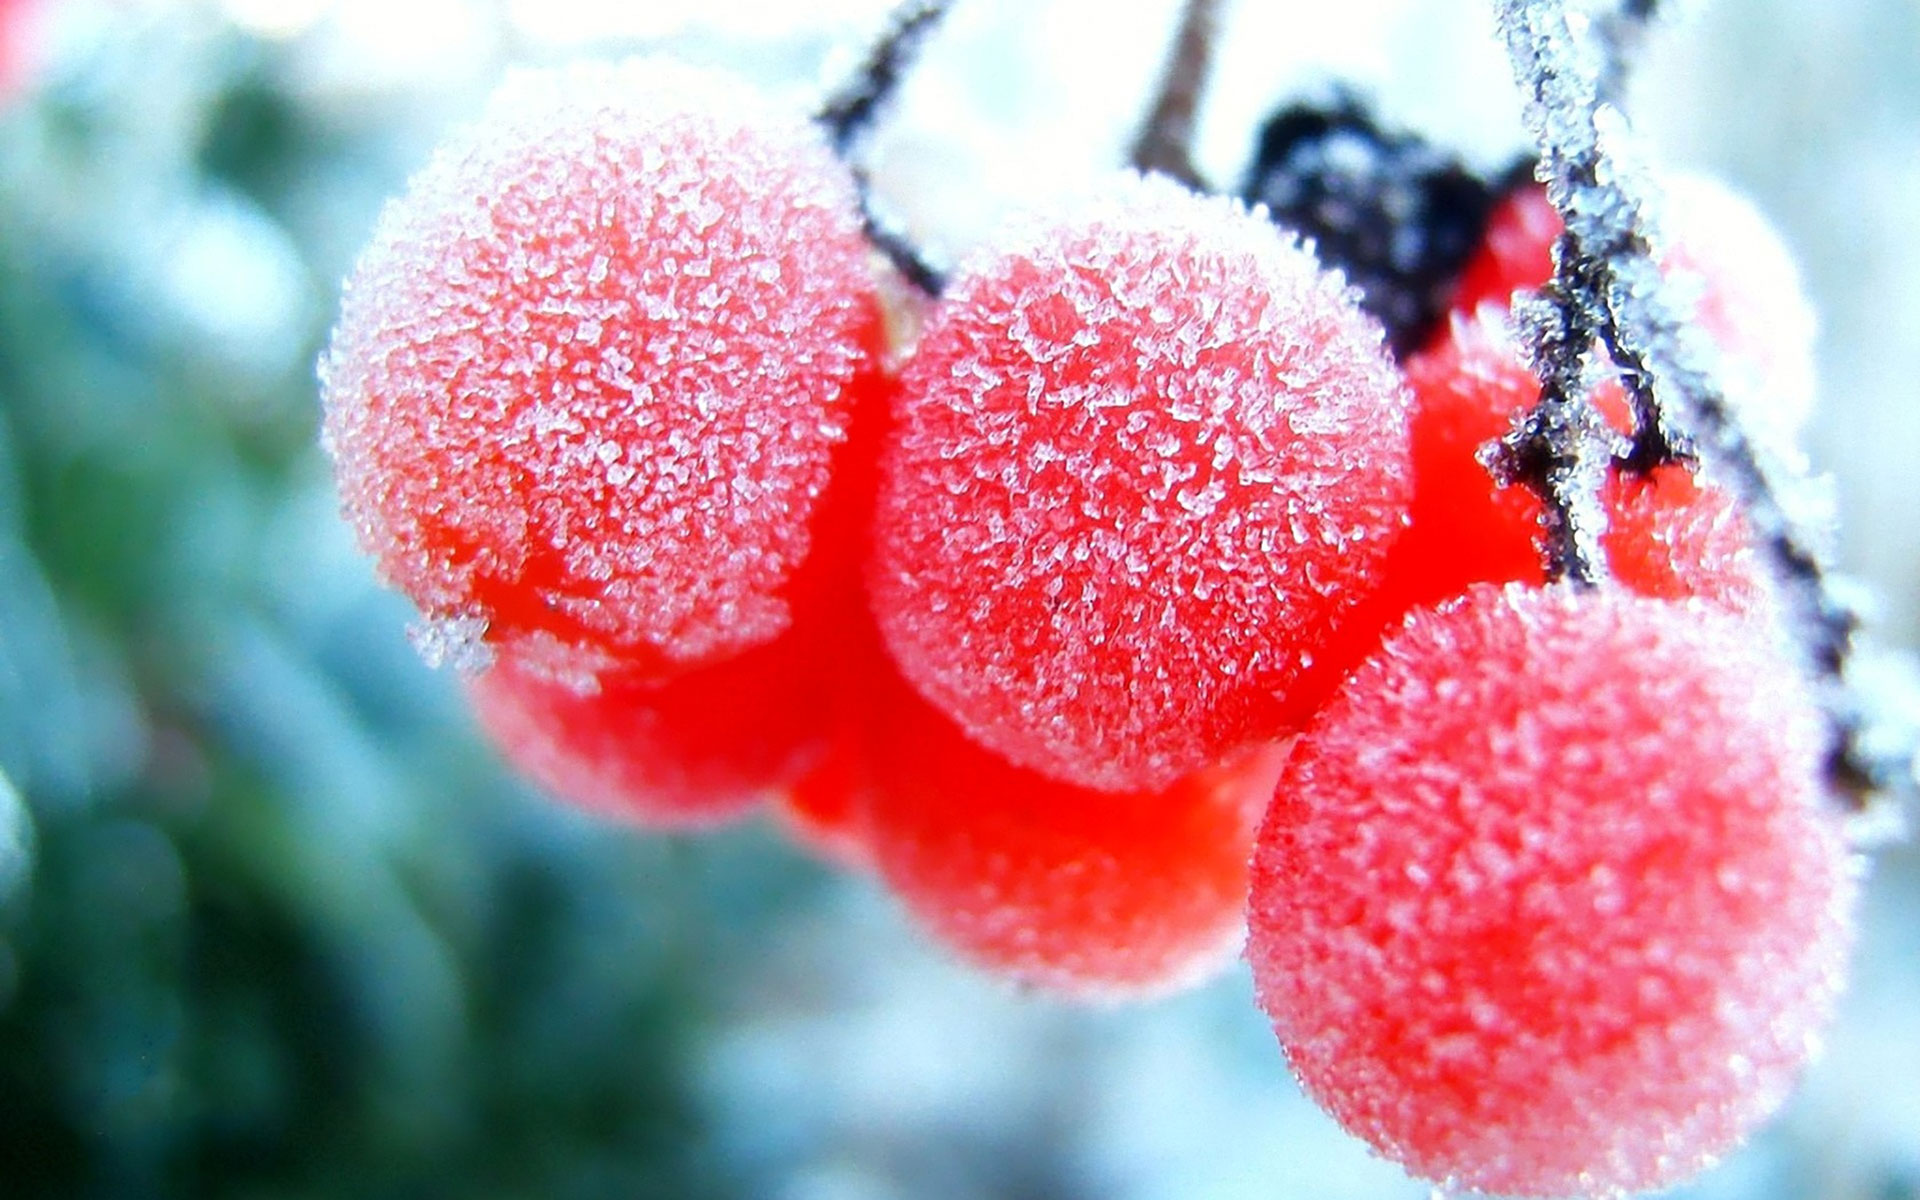 Winter Frozen Fruits Wallpapers Hd Desktop Backgroung Picture